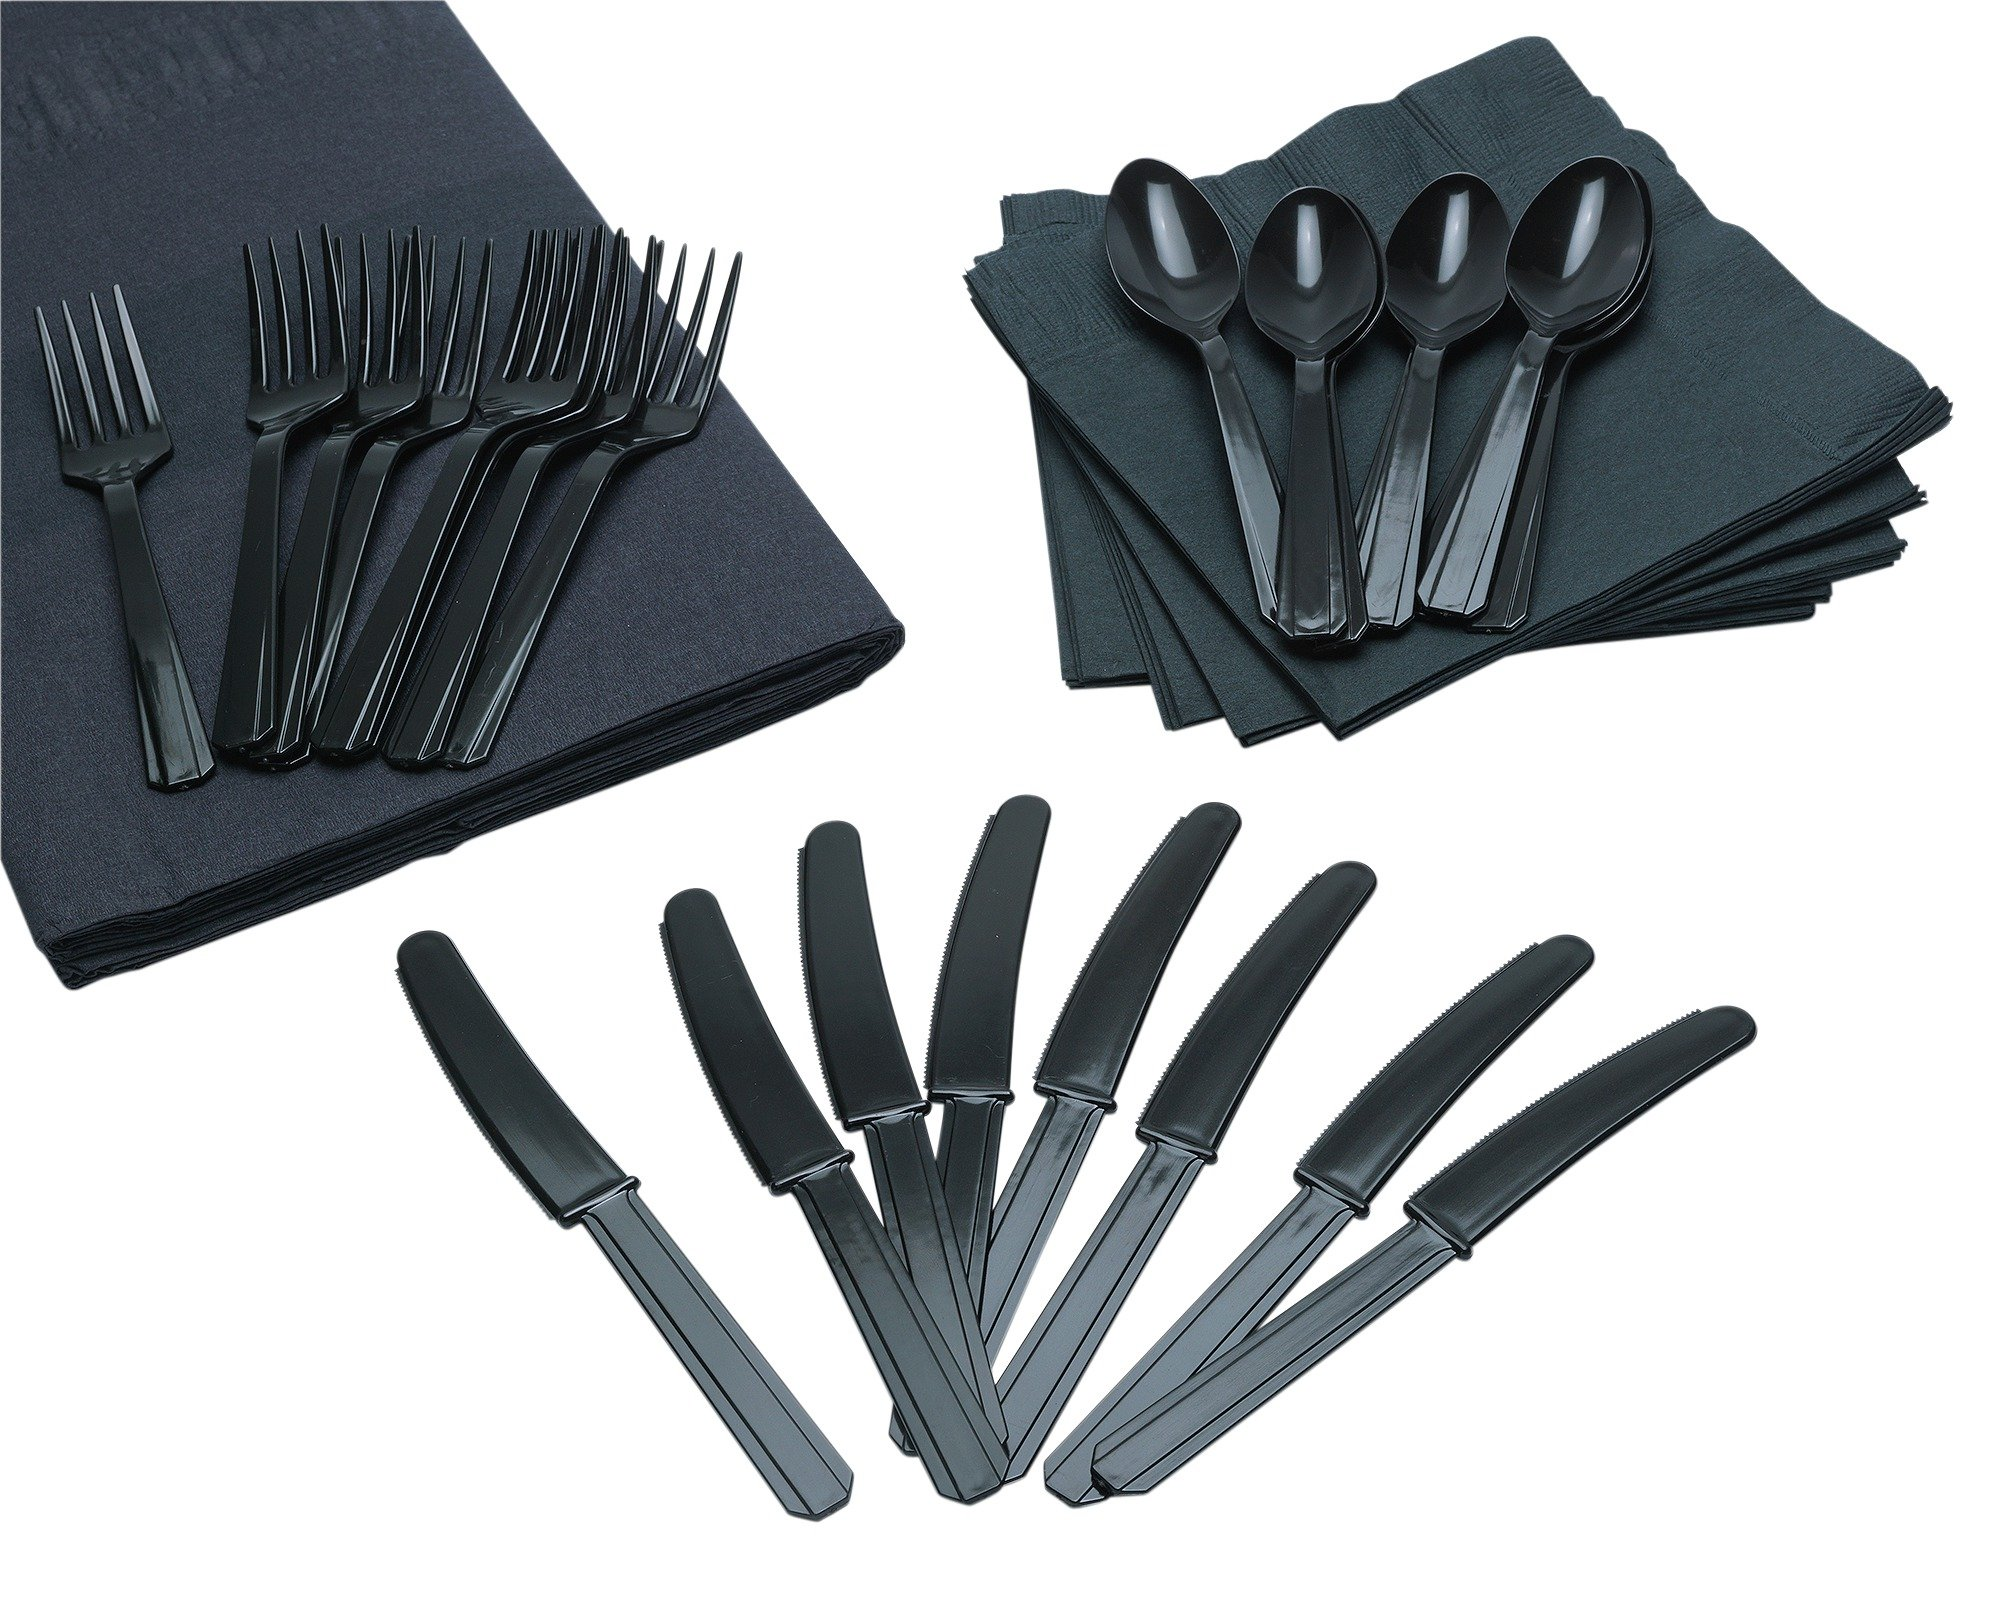 Image of Cutlery, Napkins and Tablecloth Set - Black